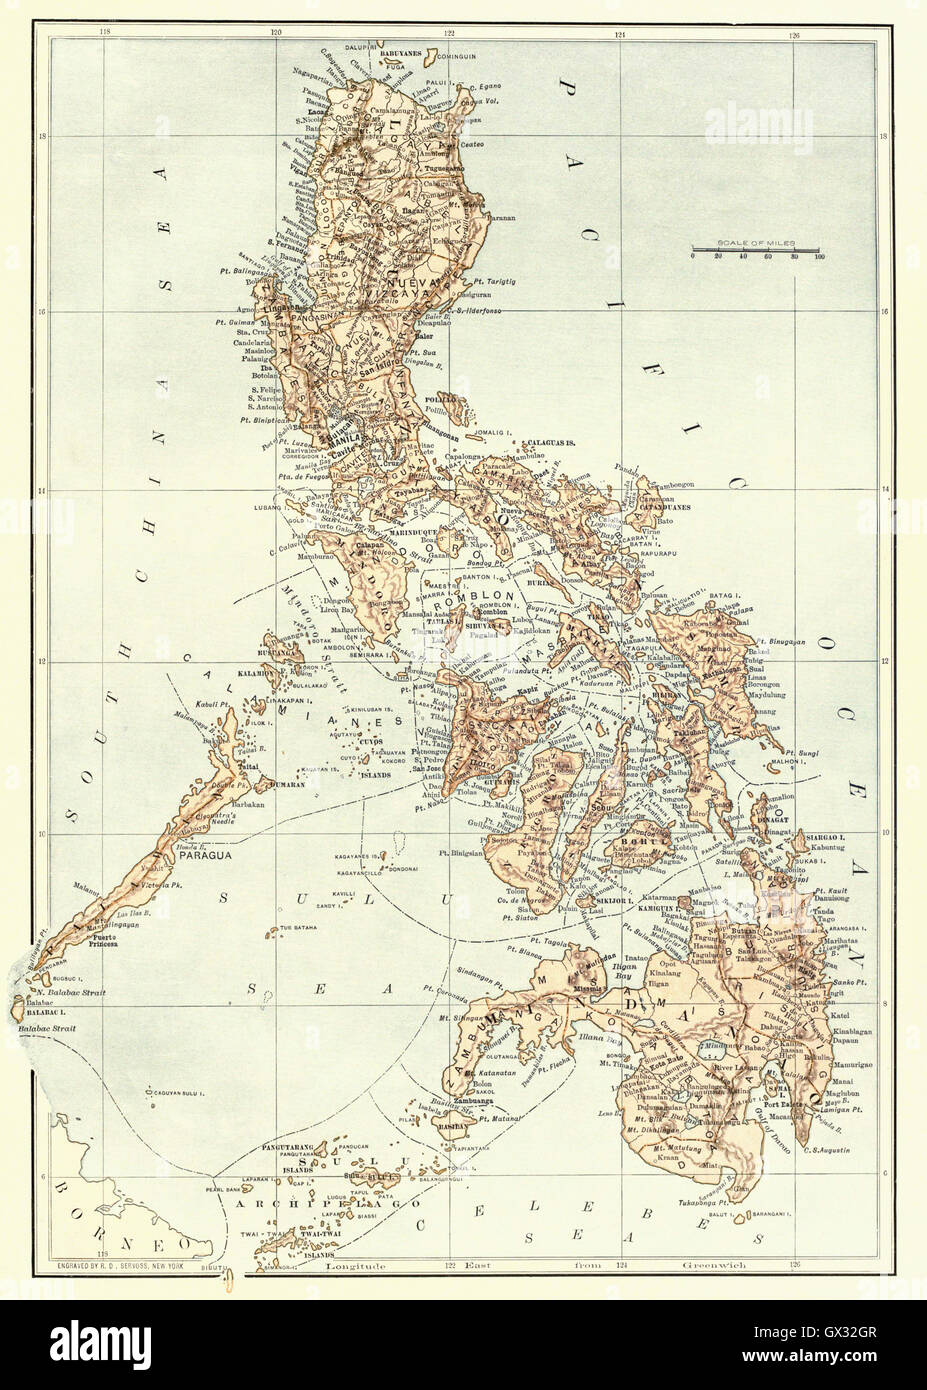 Map of the Philippines at the end of the 19th century Stock Photo